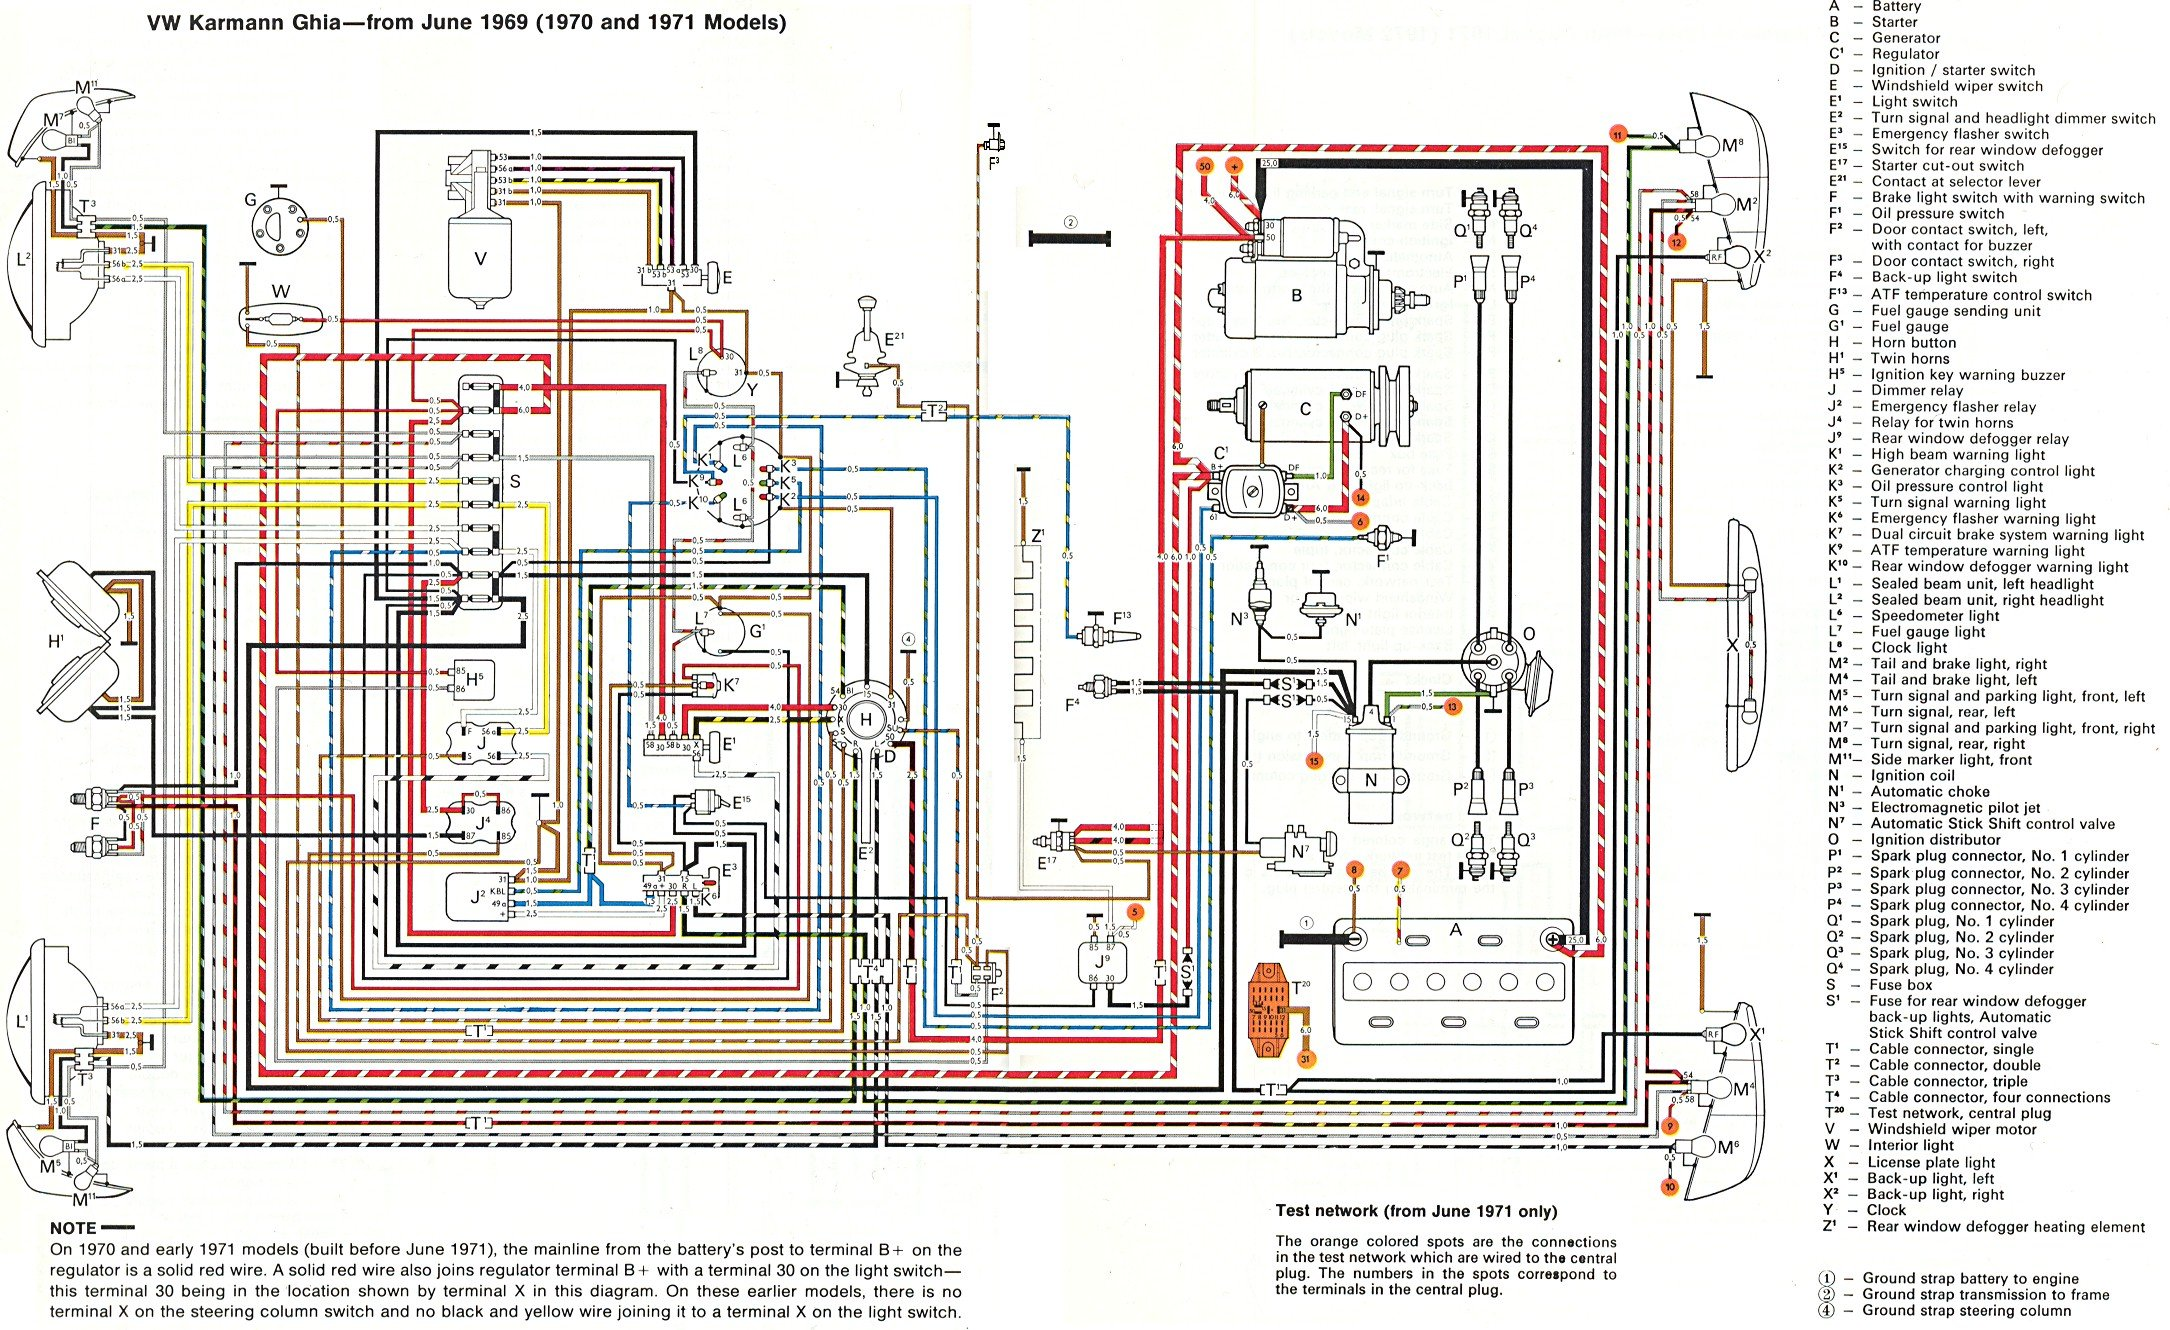 Karmann Ghia Wiring Diagrams 1964 Volkswagen Diagram